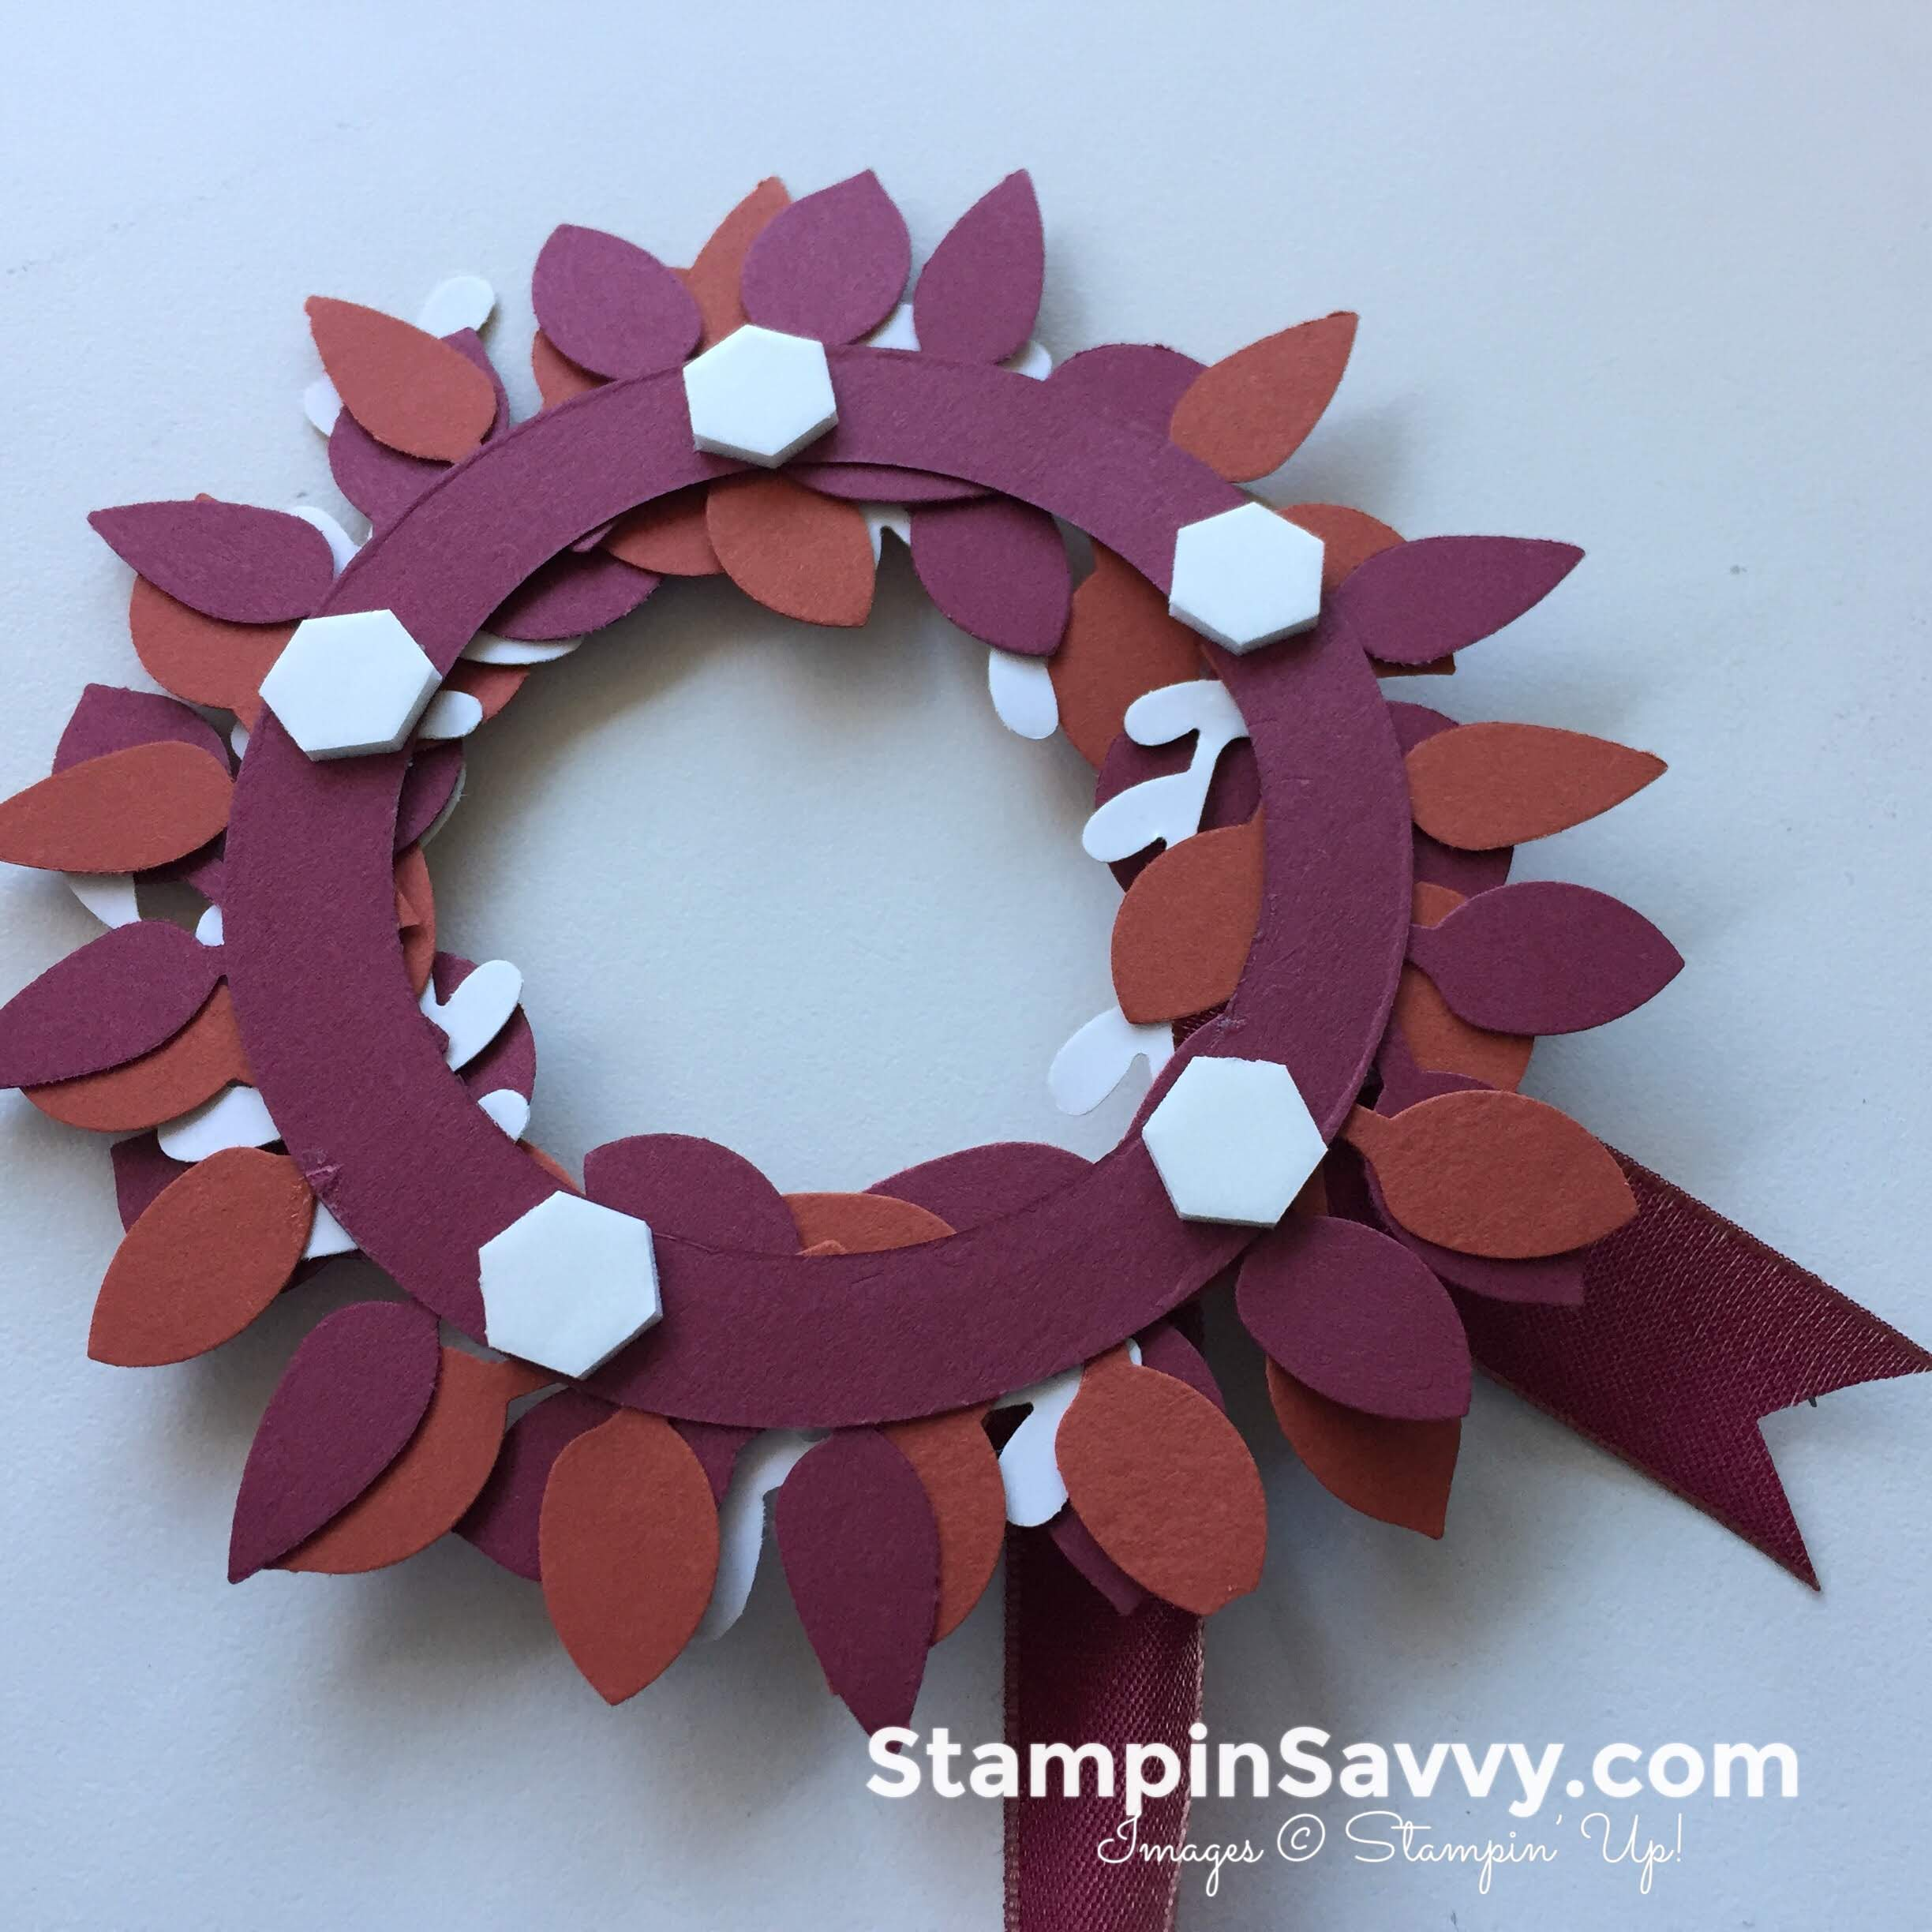 cards with punches, leaf punch, sprig punch, layering circles dies, stampin up, stampinup, stampin savvy, tammy beard